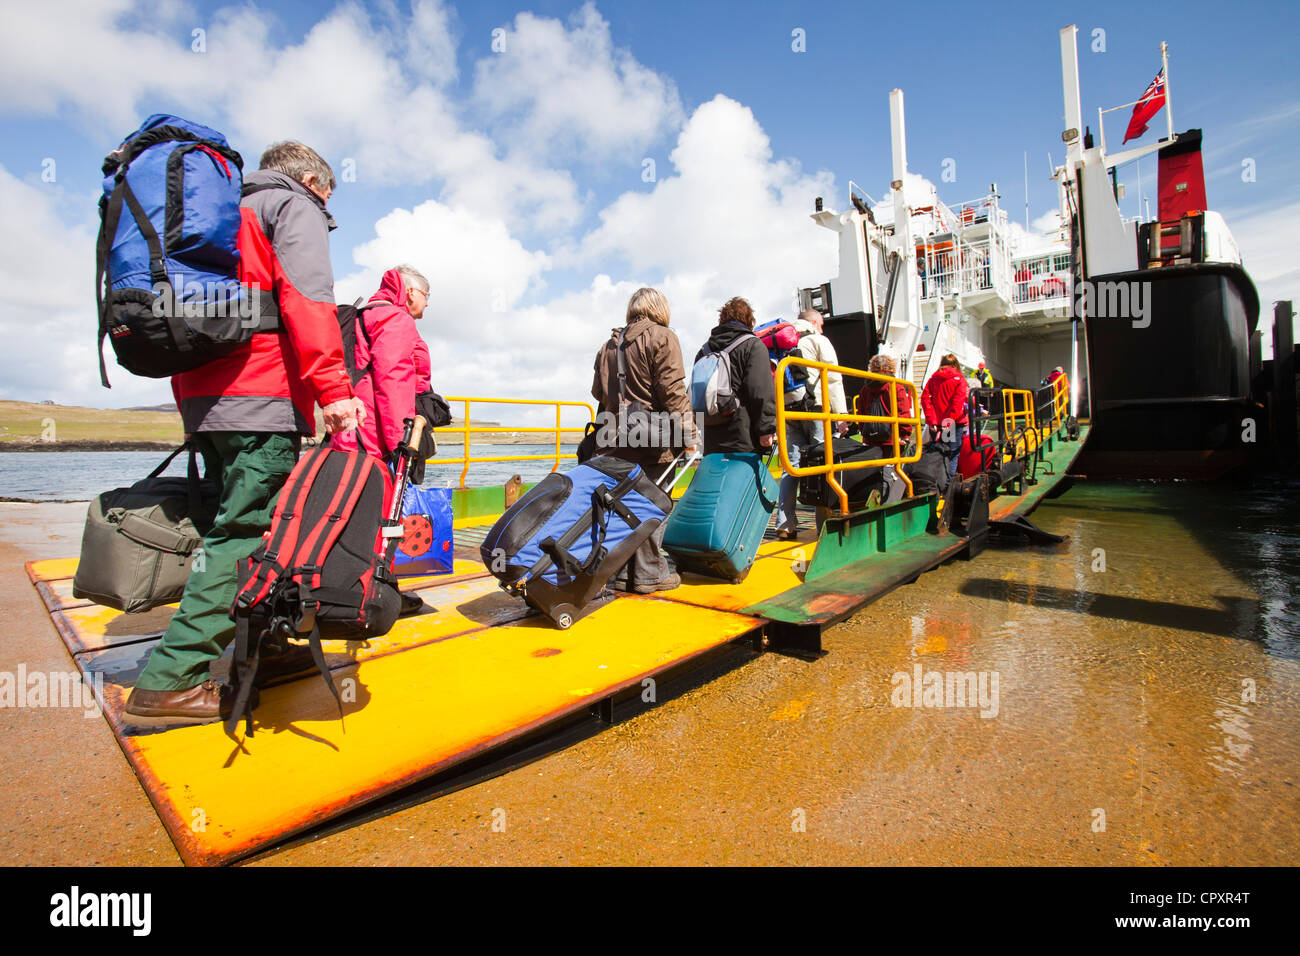 Foot passengers emark the Caledonian Macbrayne ferry, Loch Nevis, which services the Isle of Eigg from Mallaig, - Stock Image